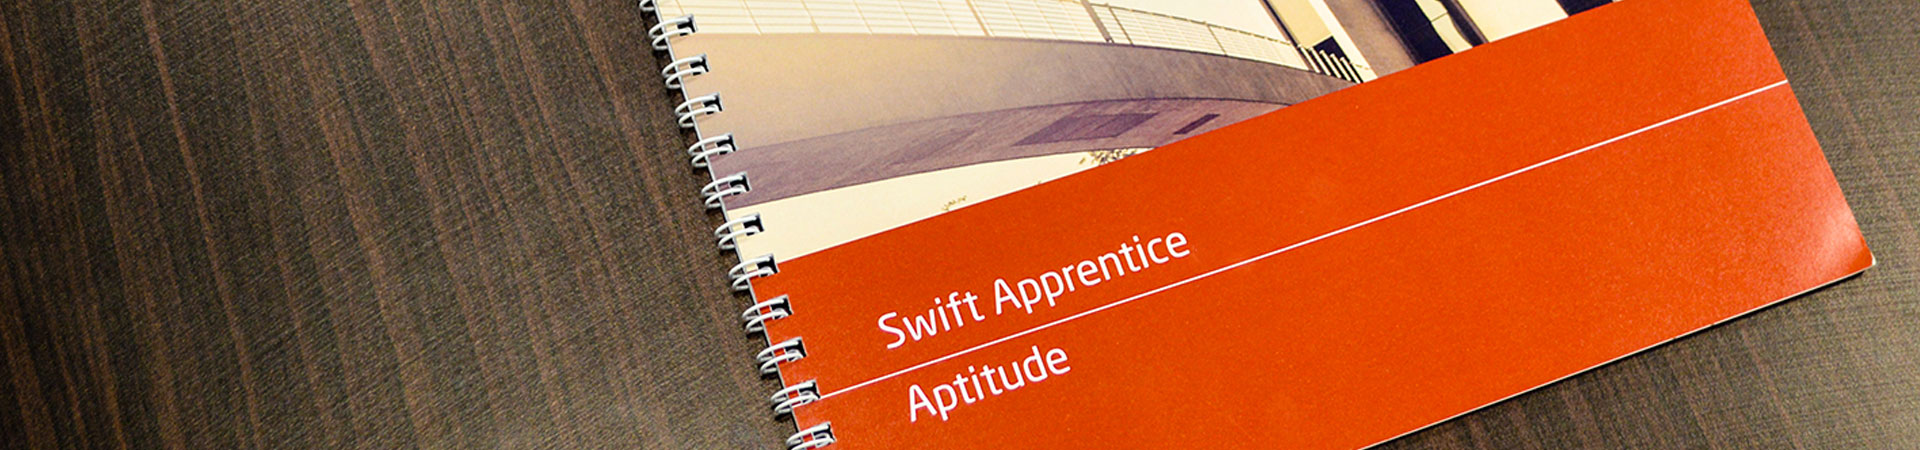 Swift Apprentice Aptitude Test